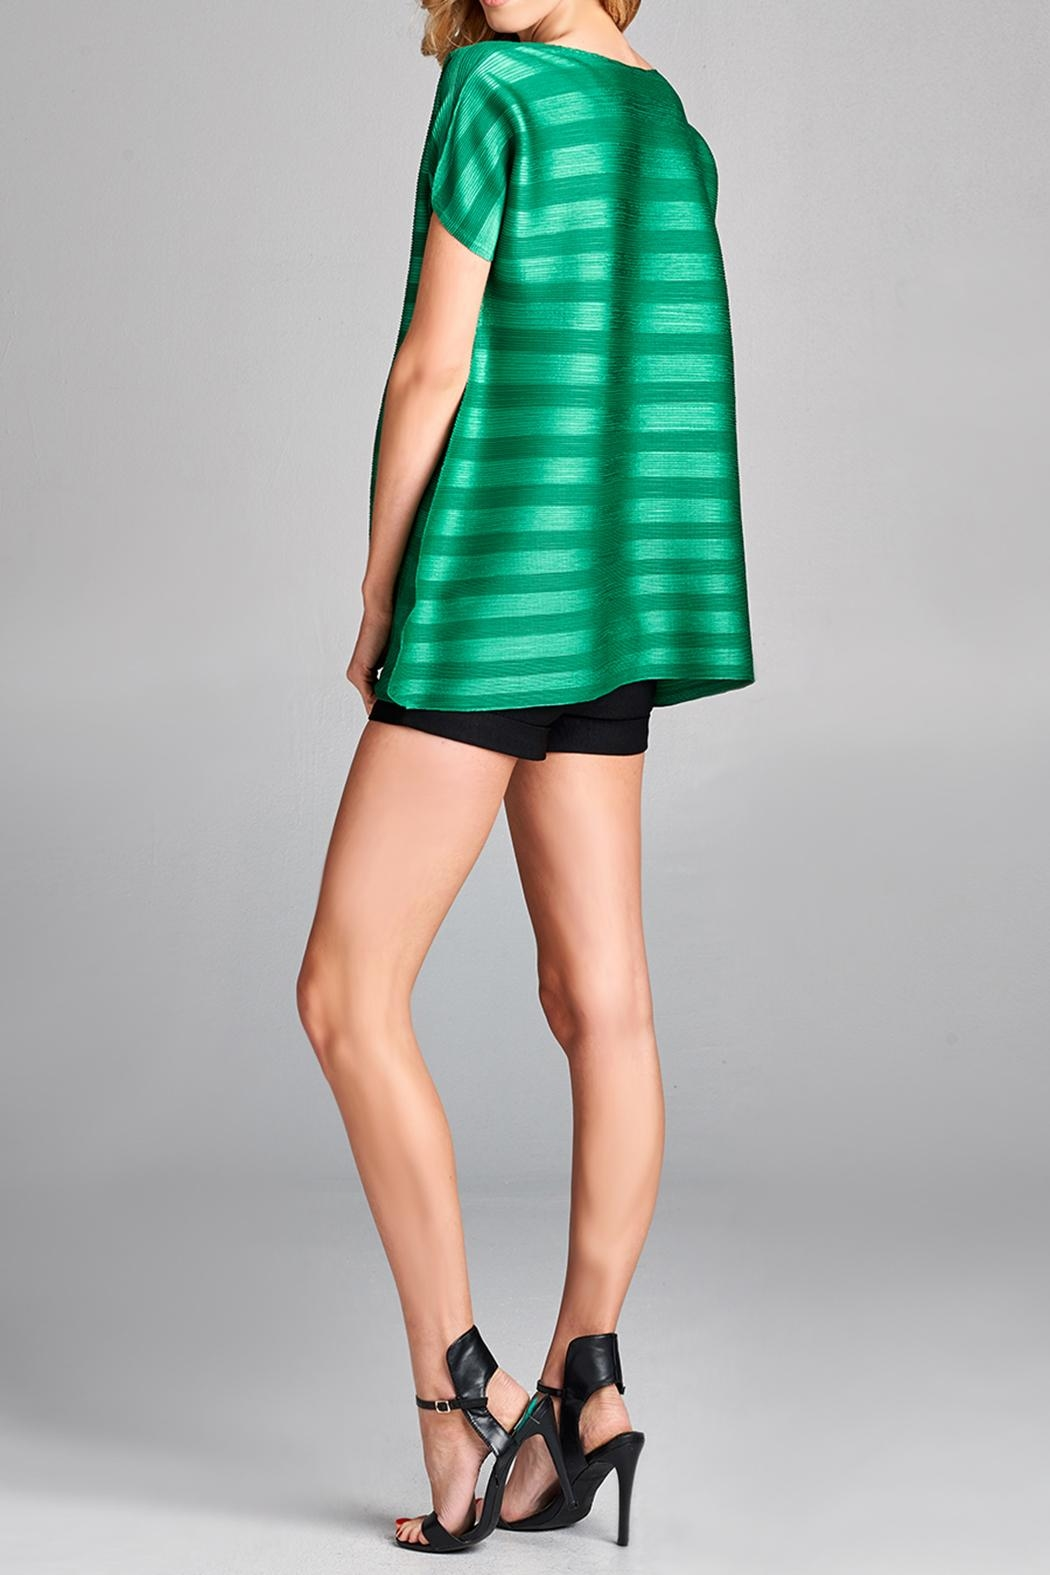 Nabisplace Dziko Pleated Top - Side Cropped Image